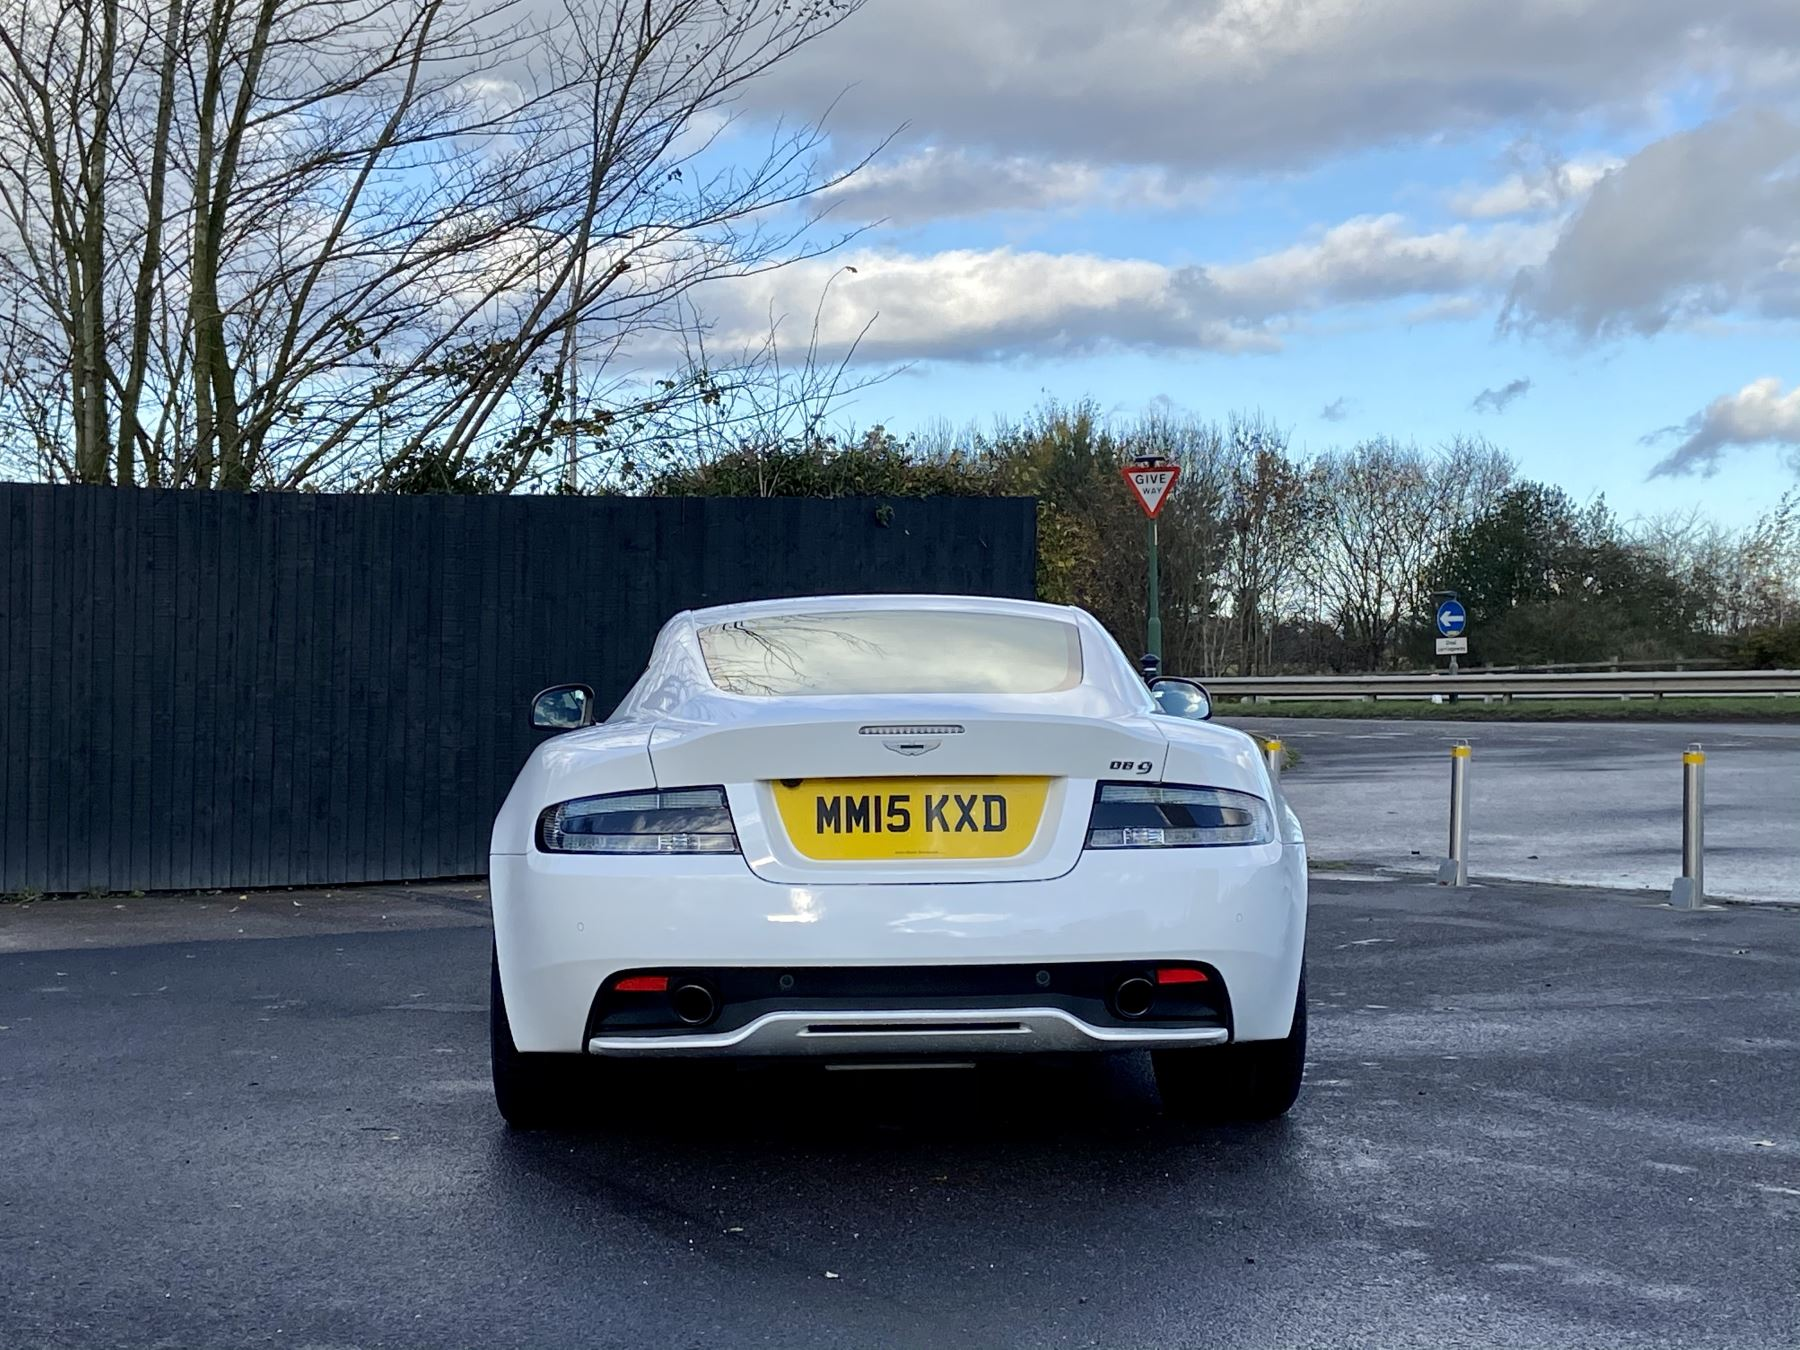 Aston Martin DB9 Carbon Edition V12 2dr Touchtronic image 6